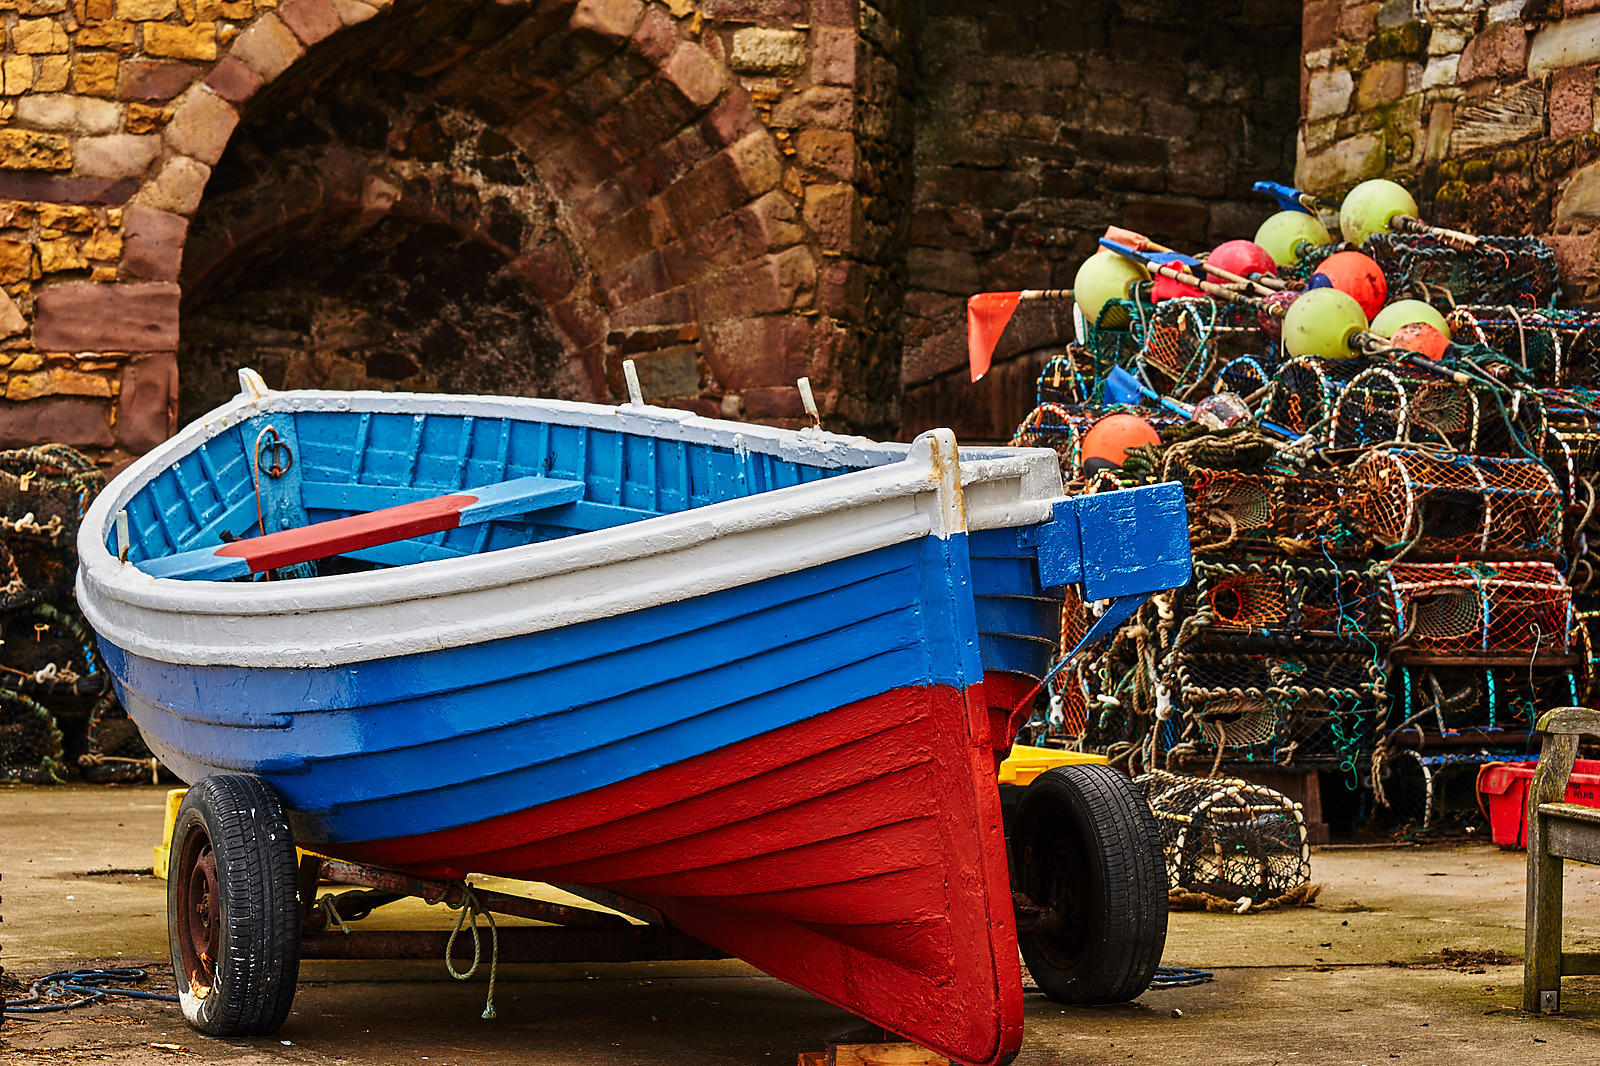 Blue and red fishing boat and lobster pots against a stone wall